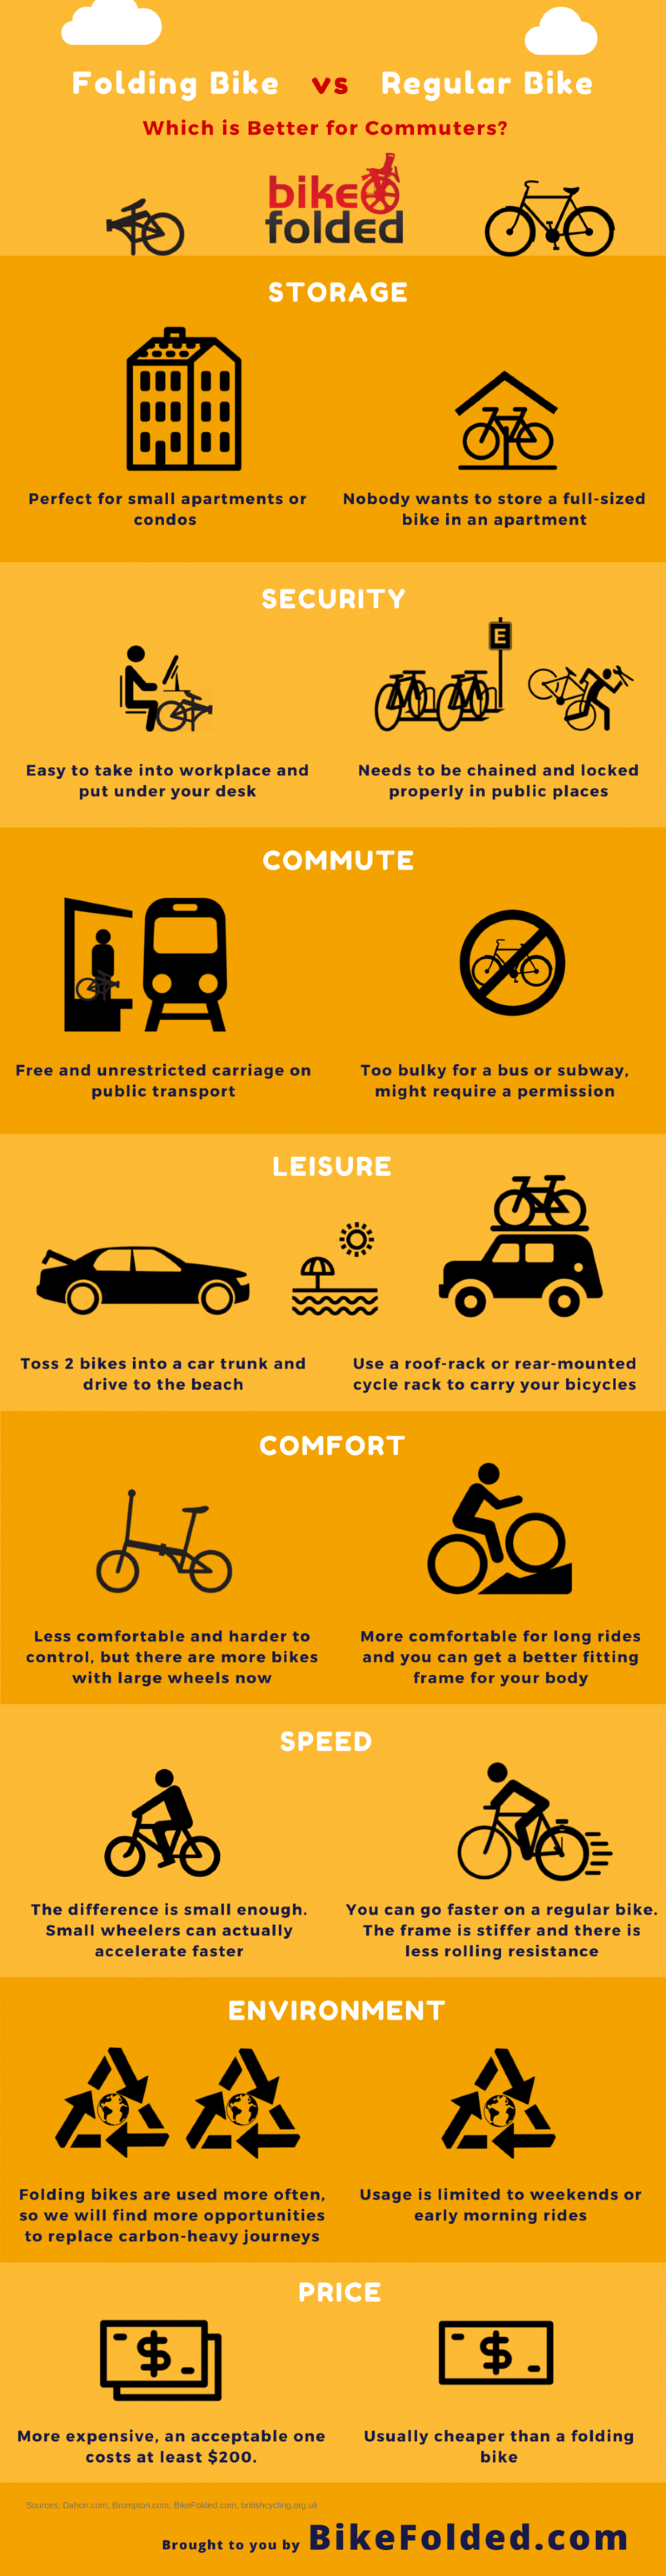 Folding Bike vs Regular Bike - Which is better for city commuters? Infographic